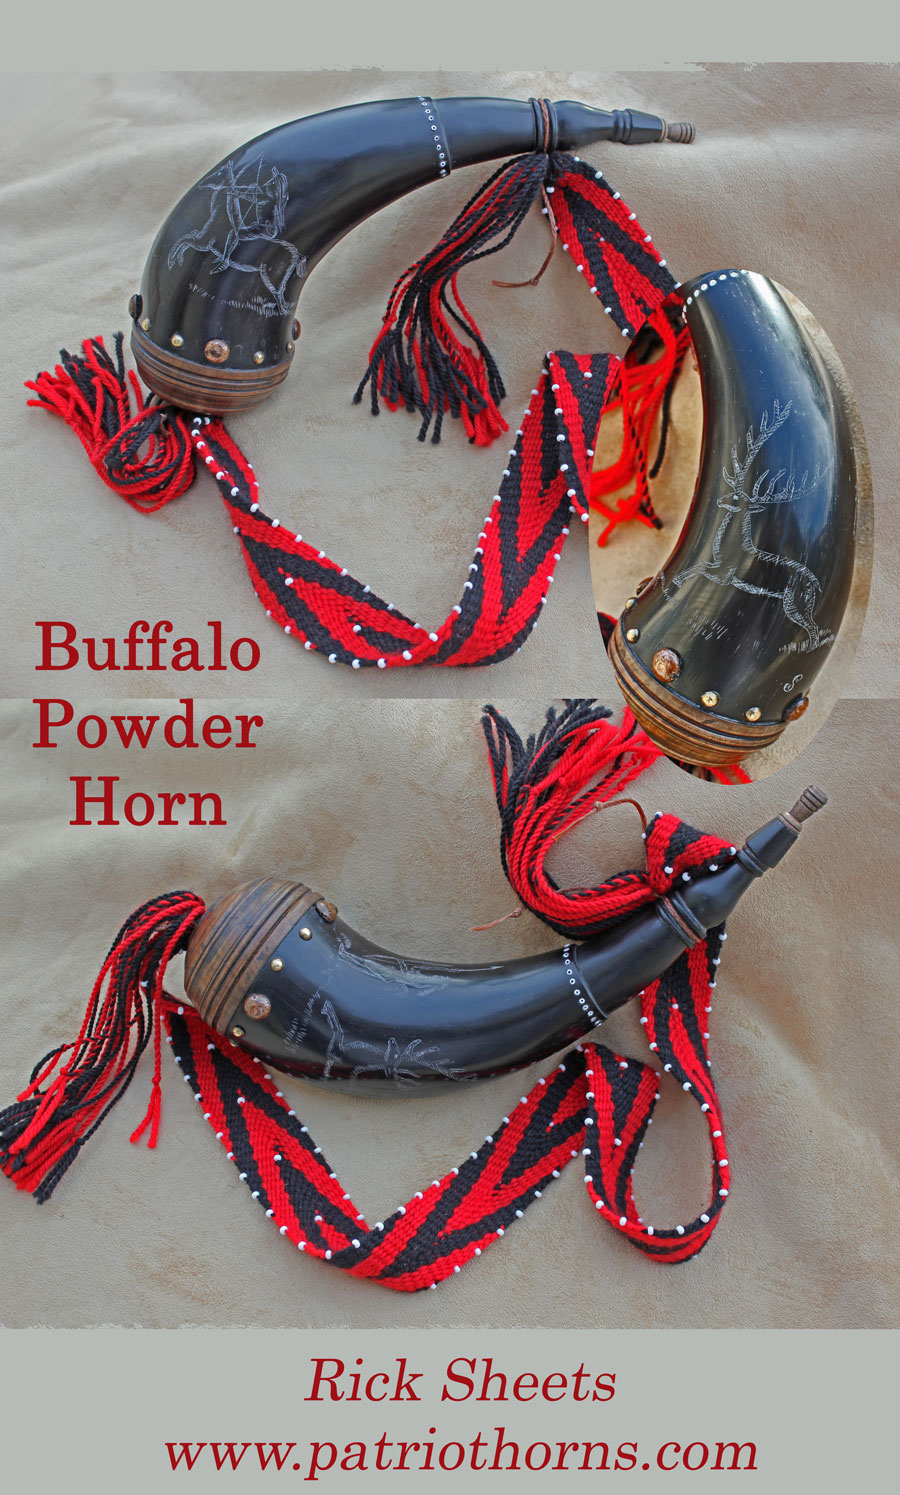 Rick-Sheets-Buffalo-Powder-Horn